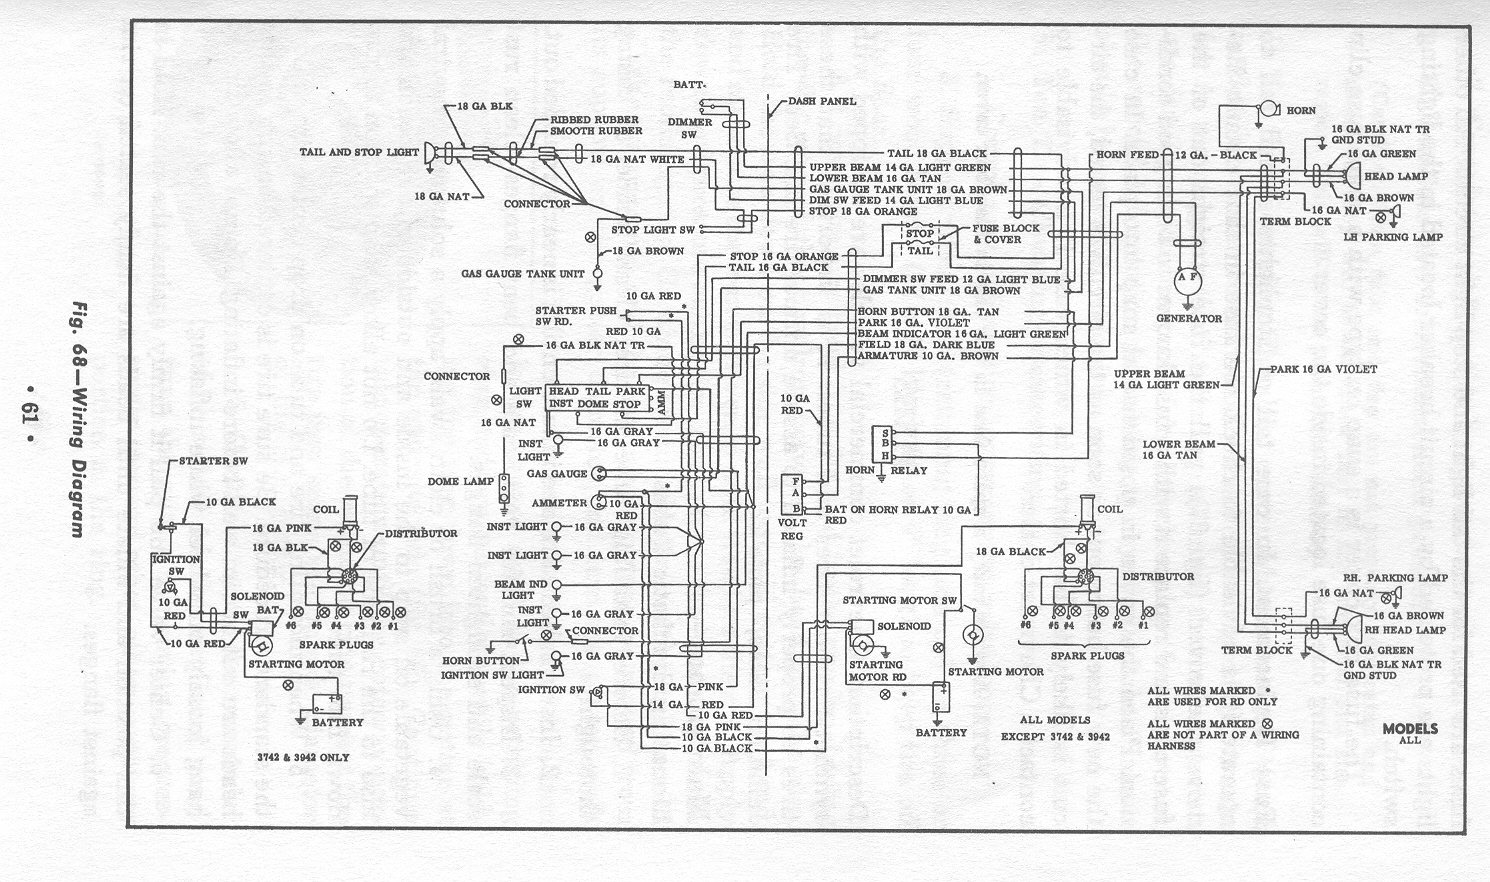 ChevyTruck 1954OperatorsManual_wiring_61 chevy truck 1965 c10 operator's manual index 1965 chevy c10 wiring diagram at reclaimingppi.co